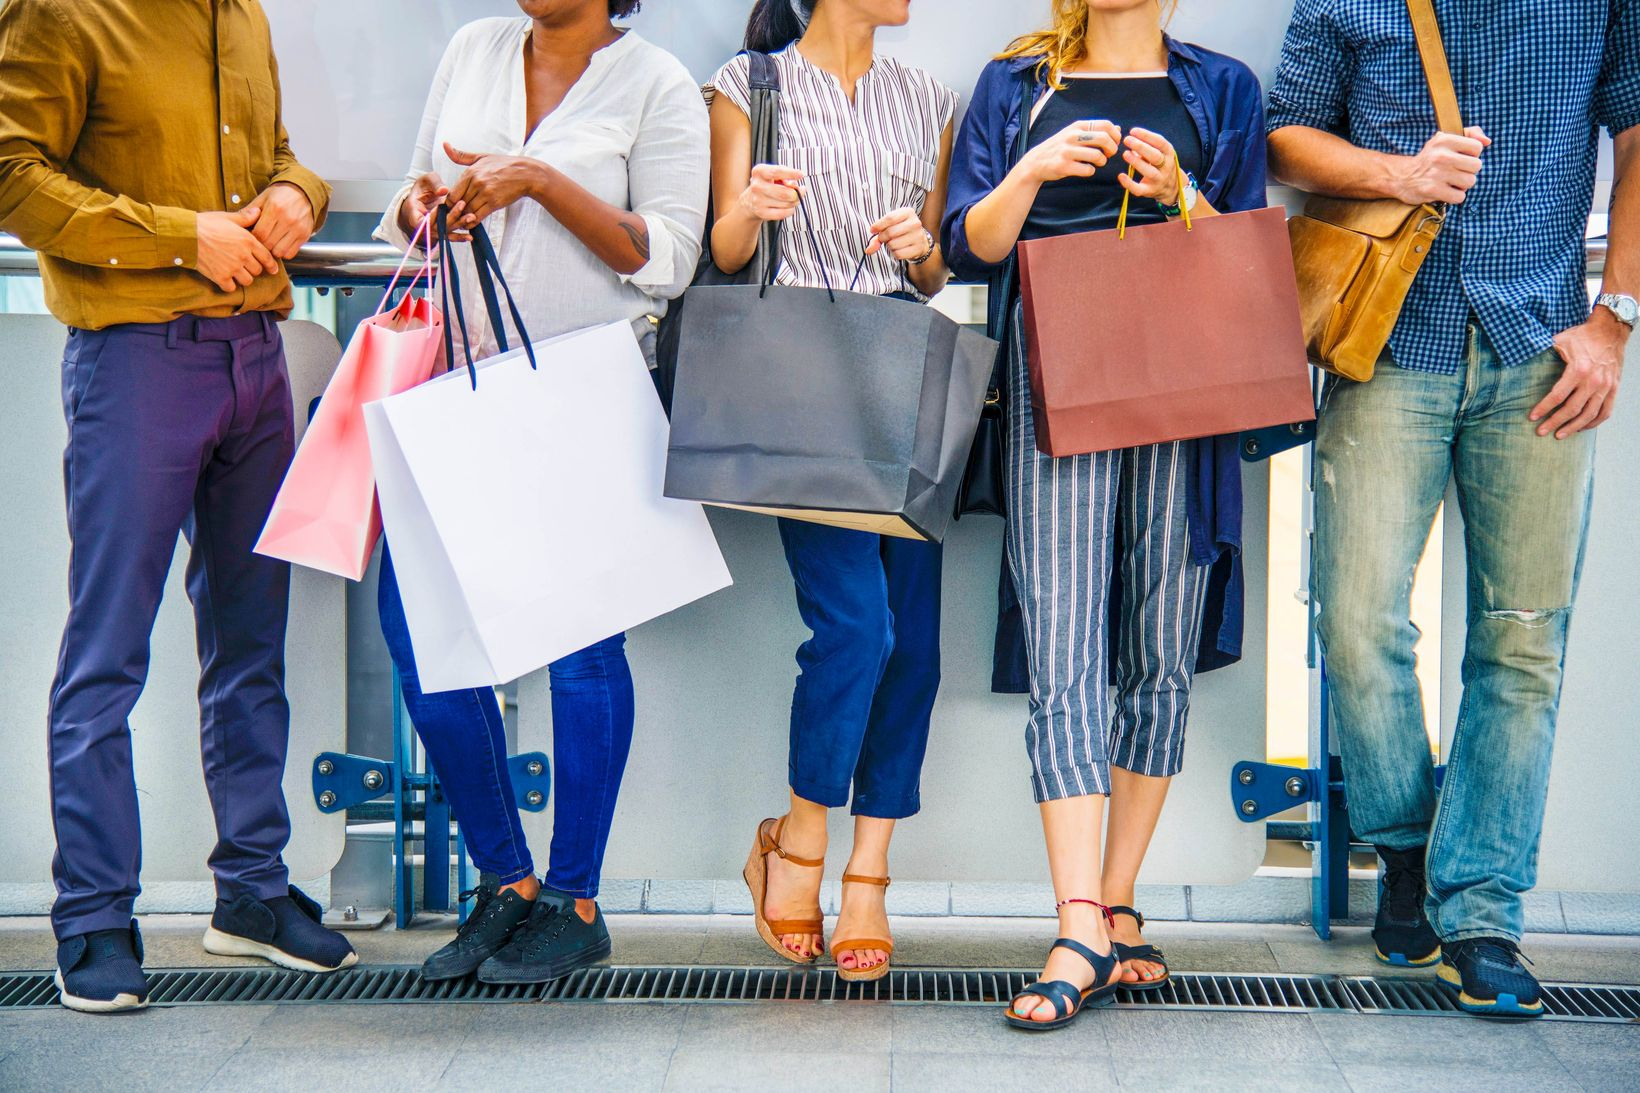 Group of friends standing in array holding numerous shopping bags, clearly indicating that the importance of budgeting is lost on them